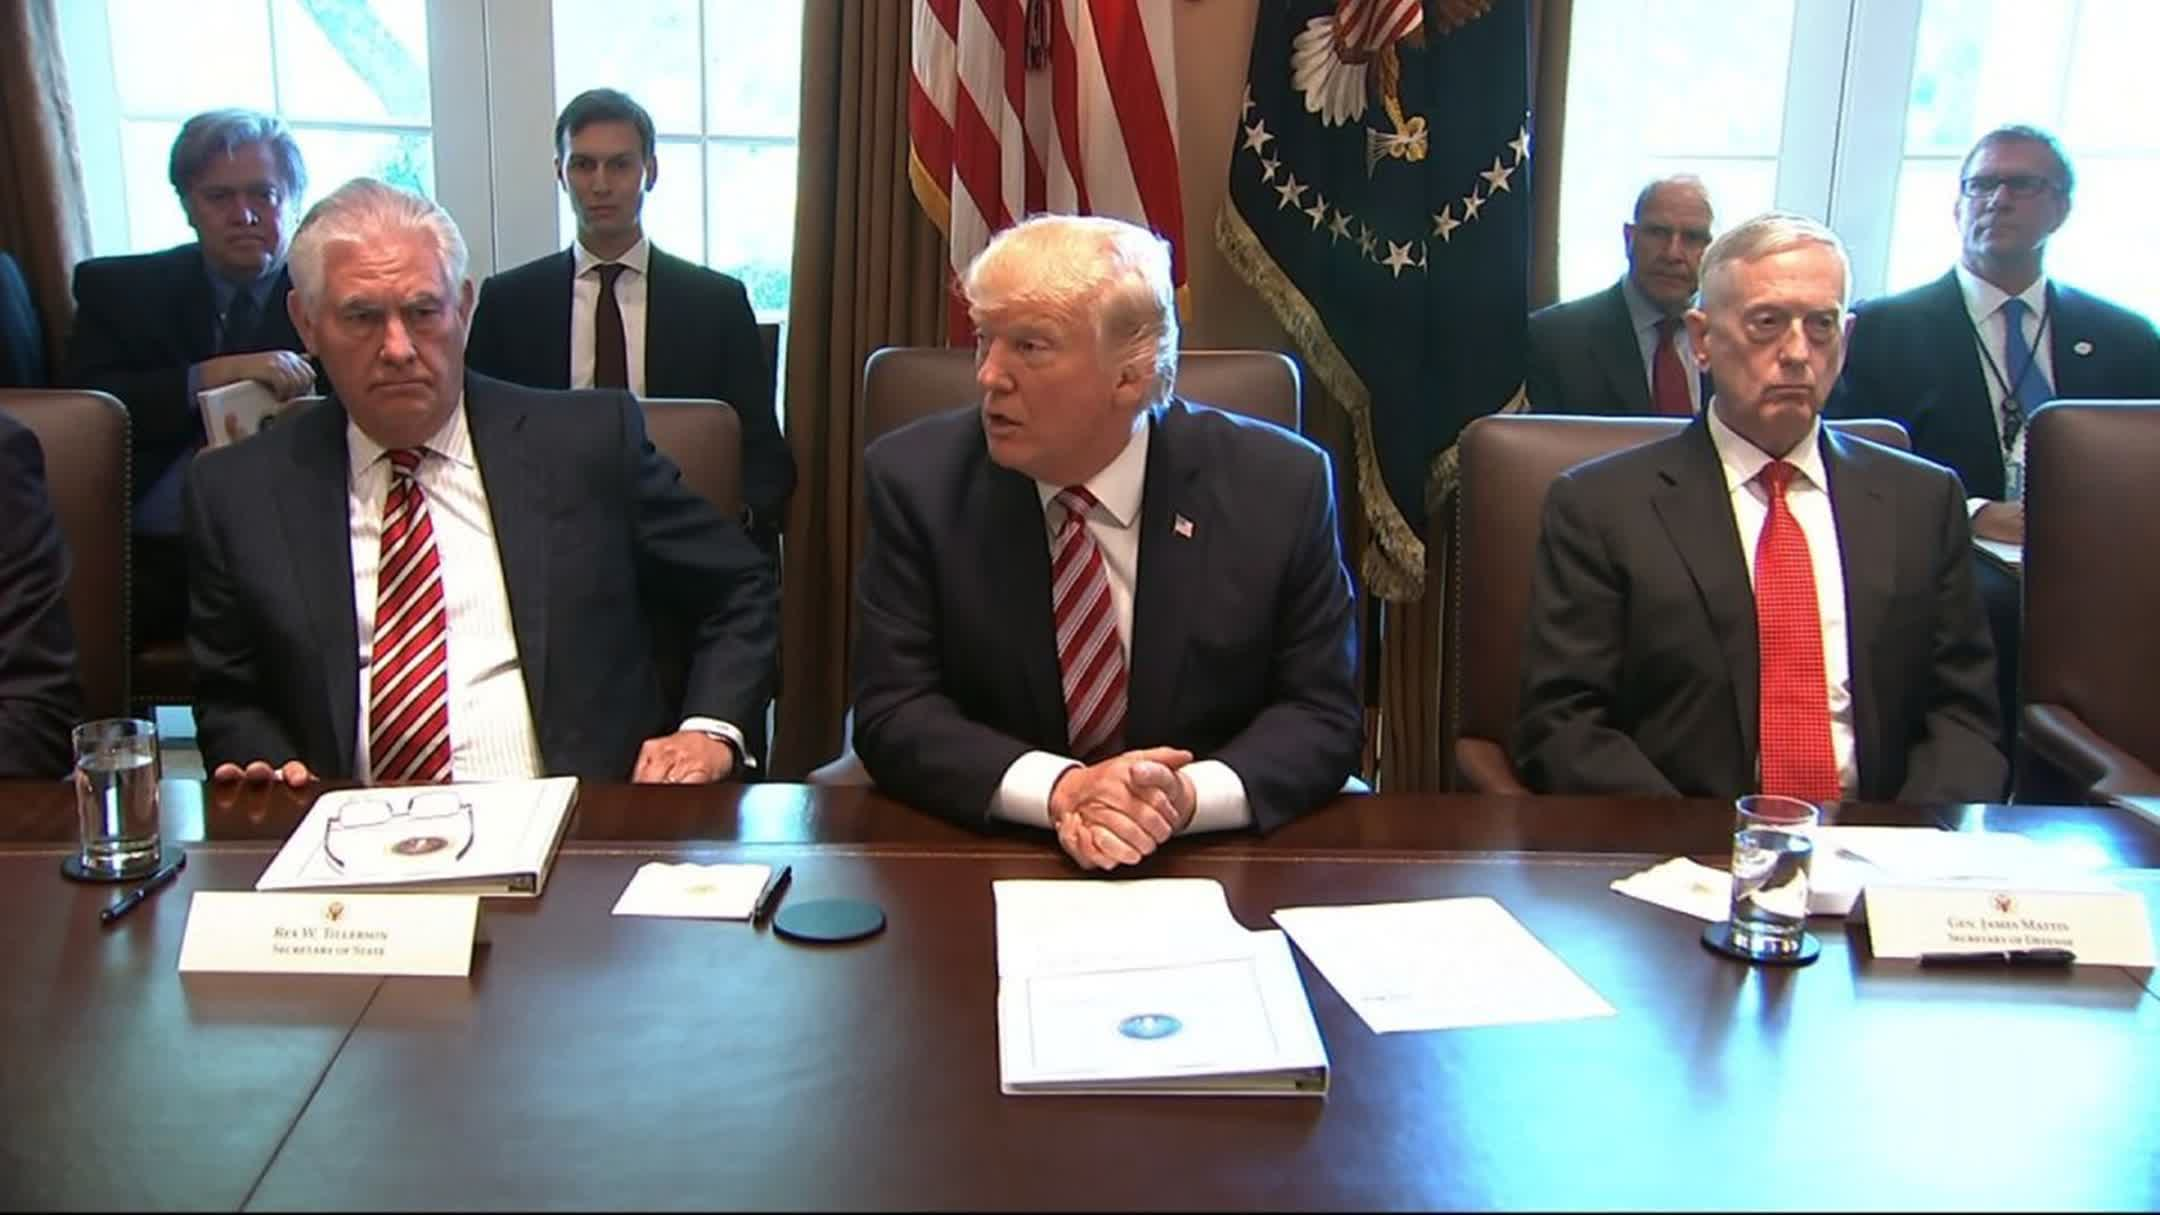 White House unveils new tech initiative as technology wars intensify